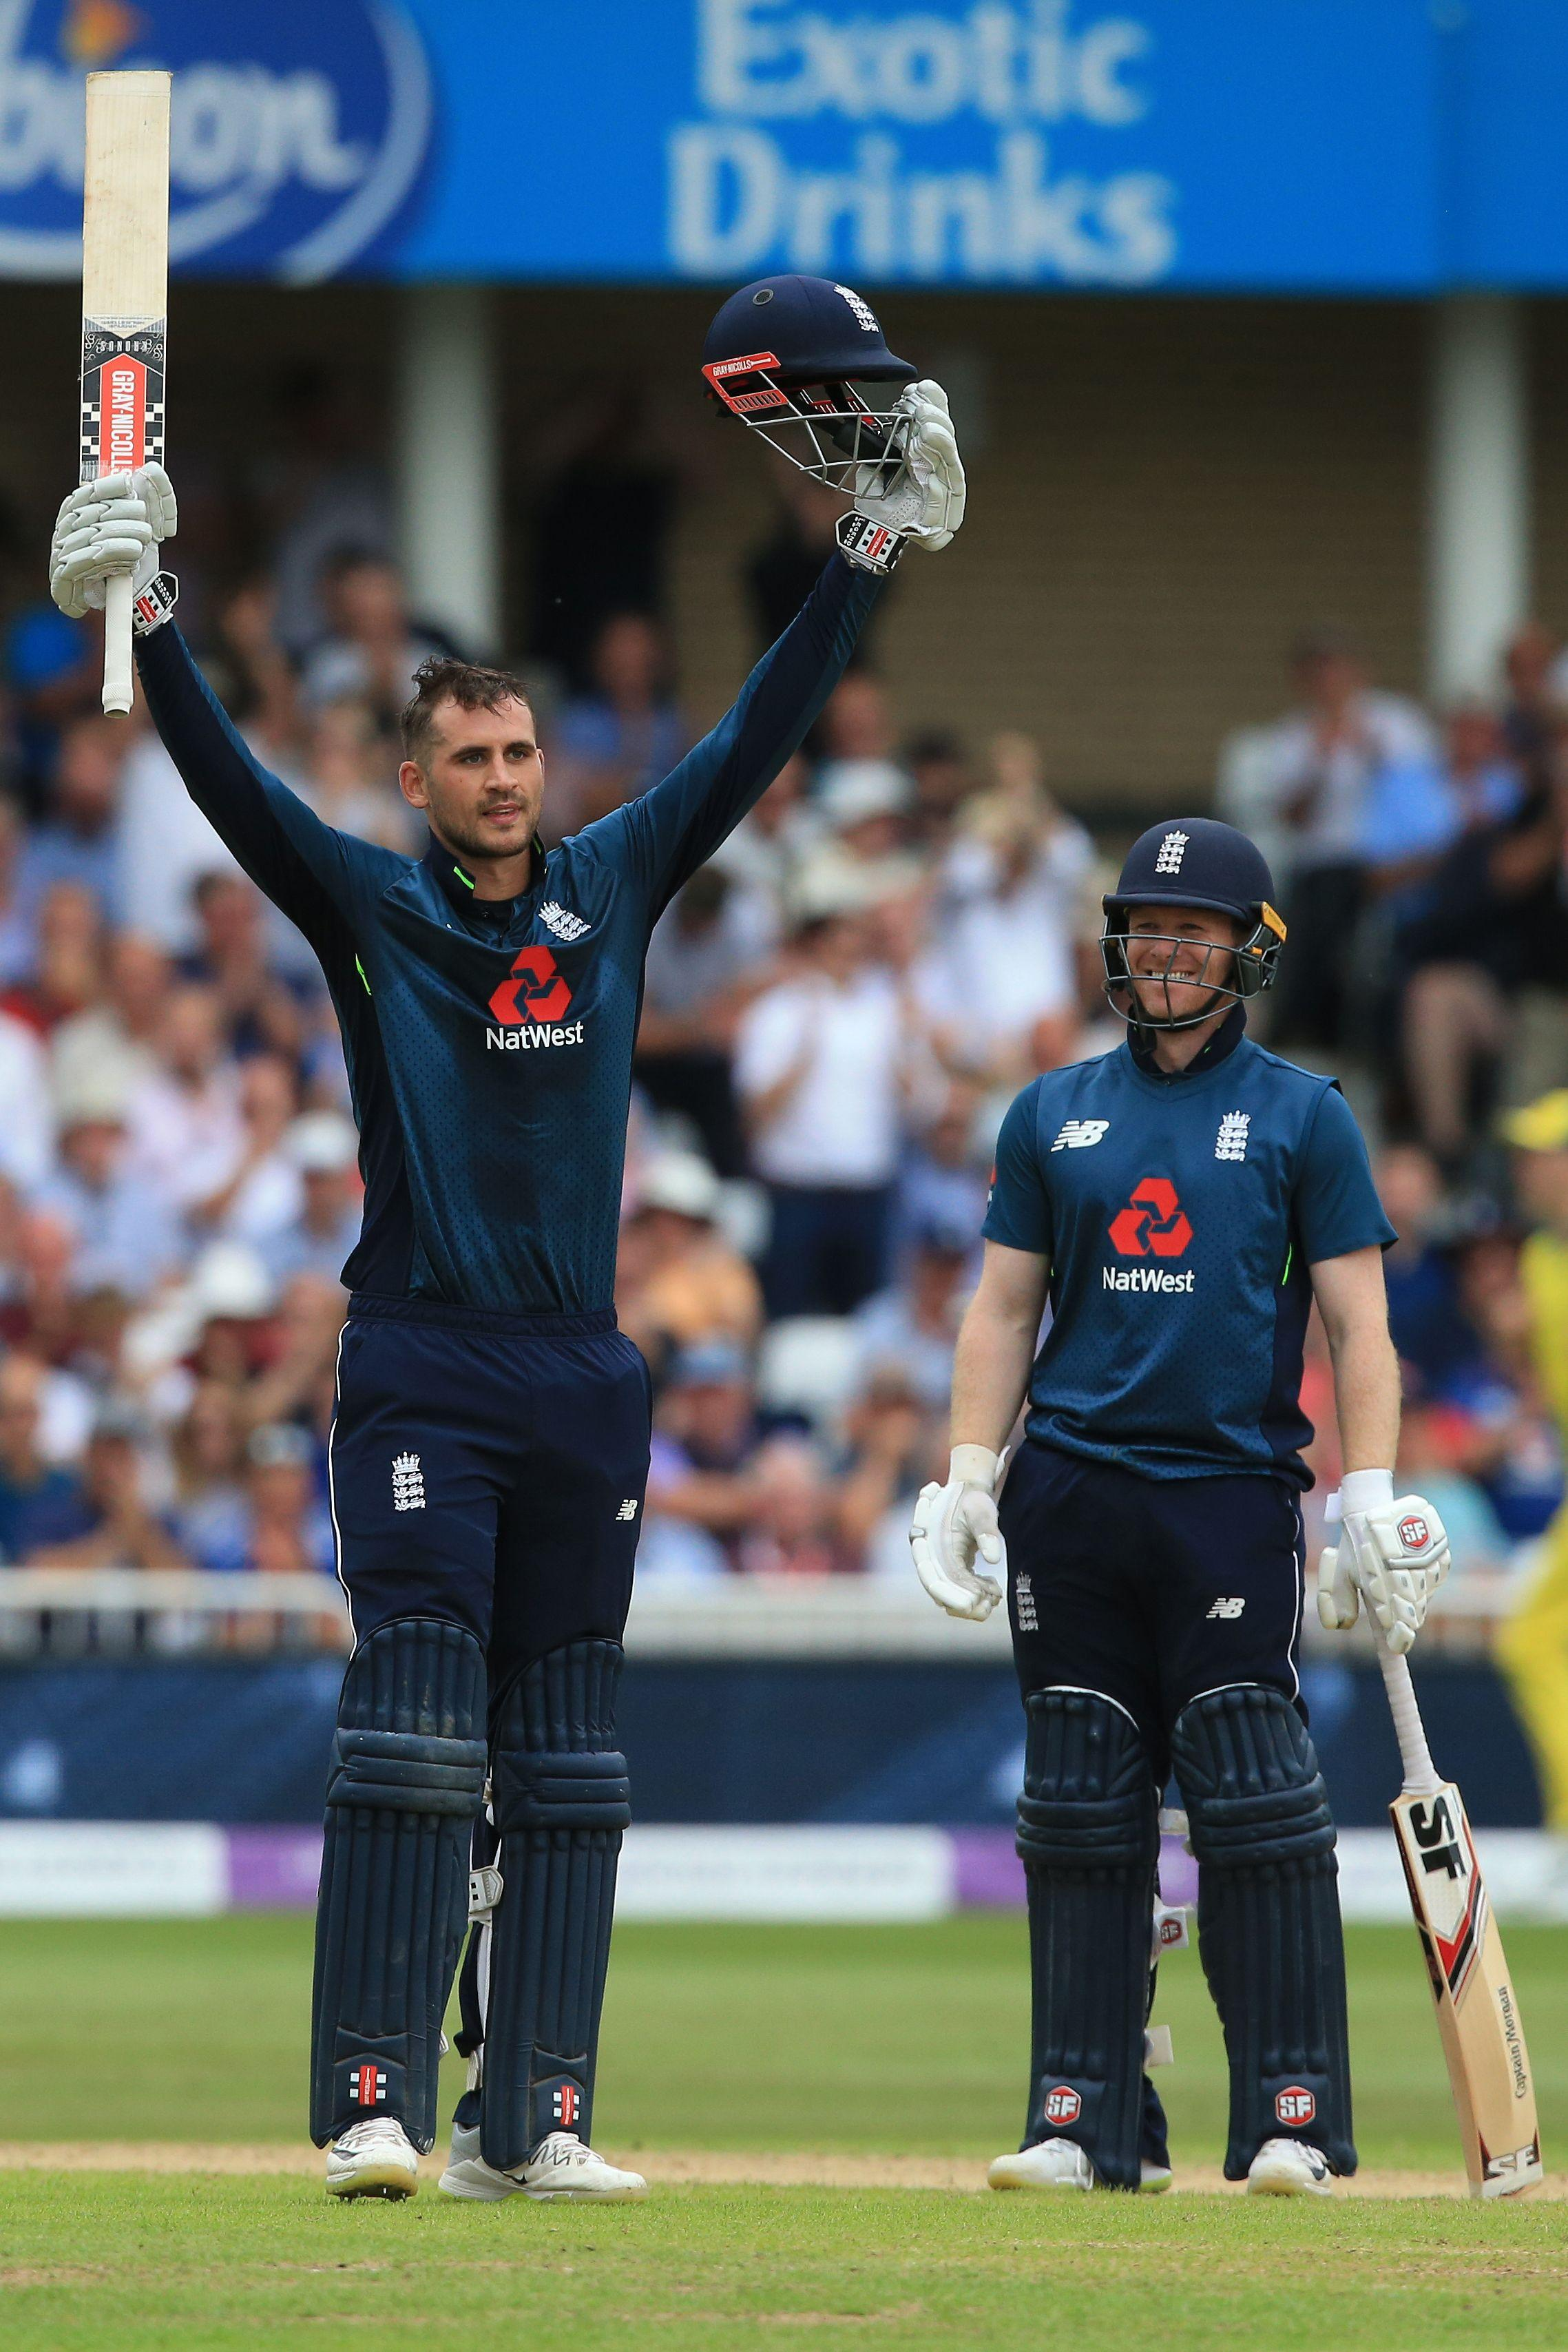 Alex Hales hit another massive century as England broke the world record for an ODI innings score at Trent Bridge